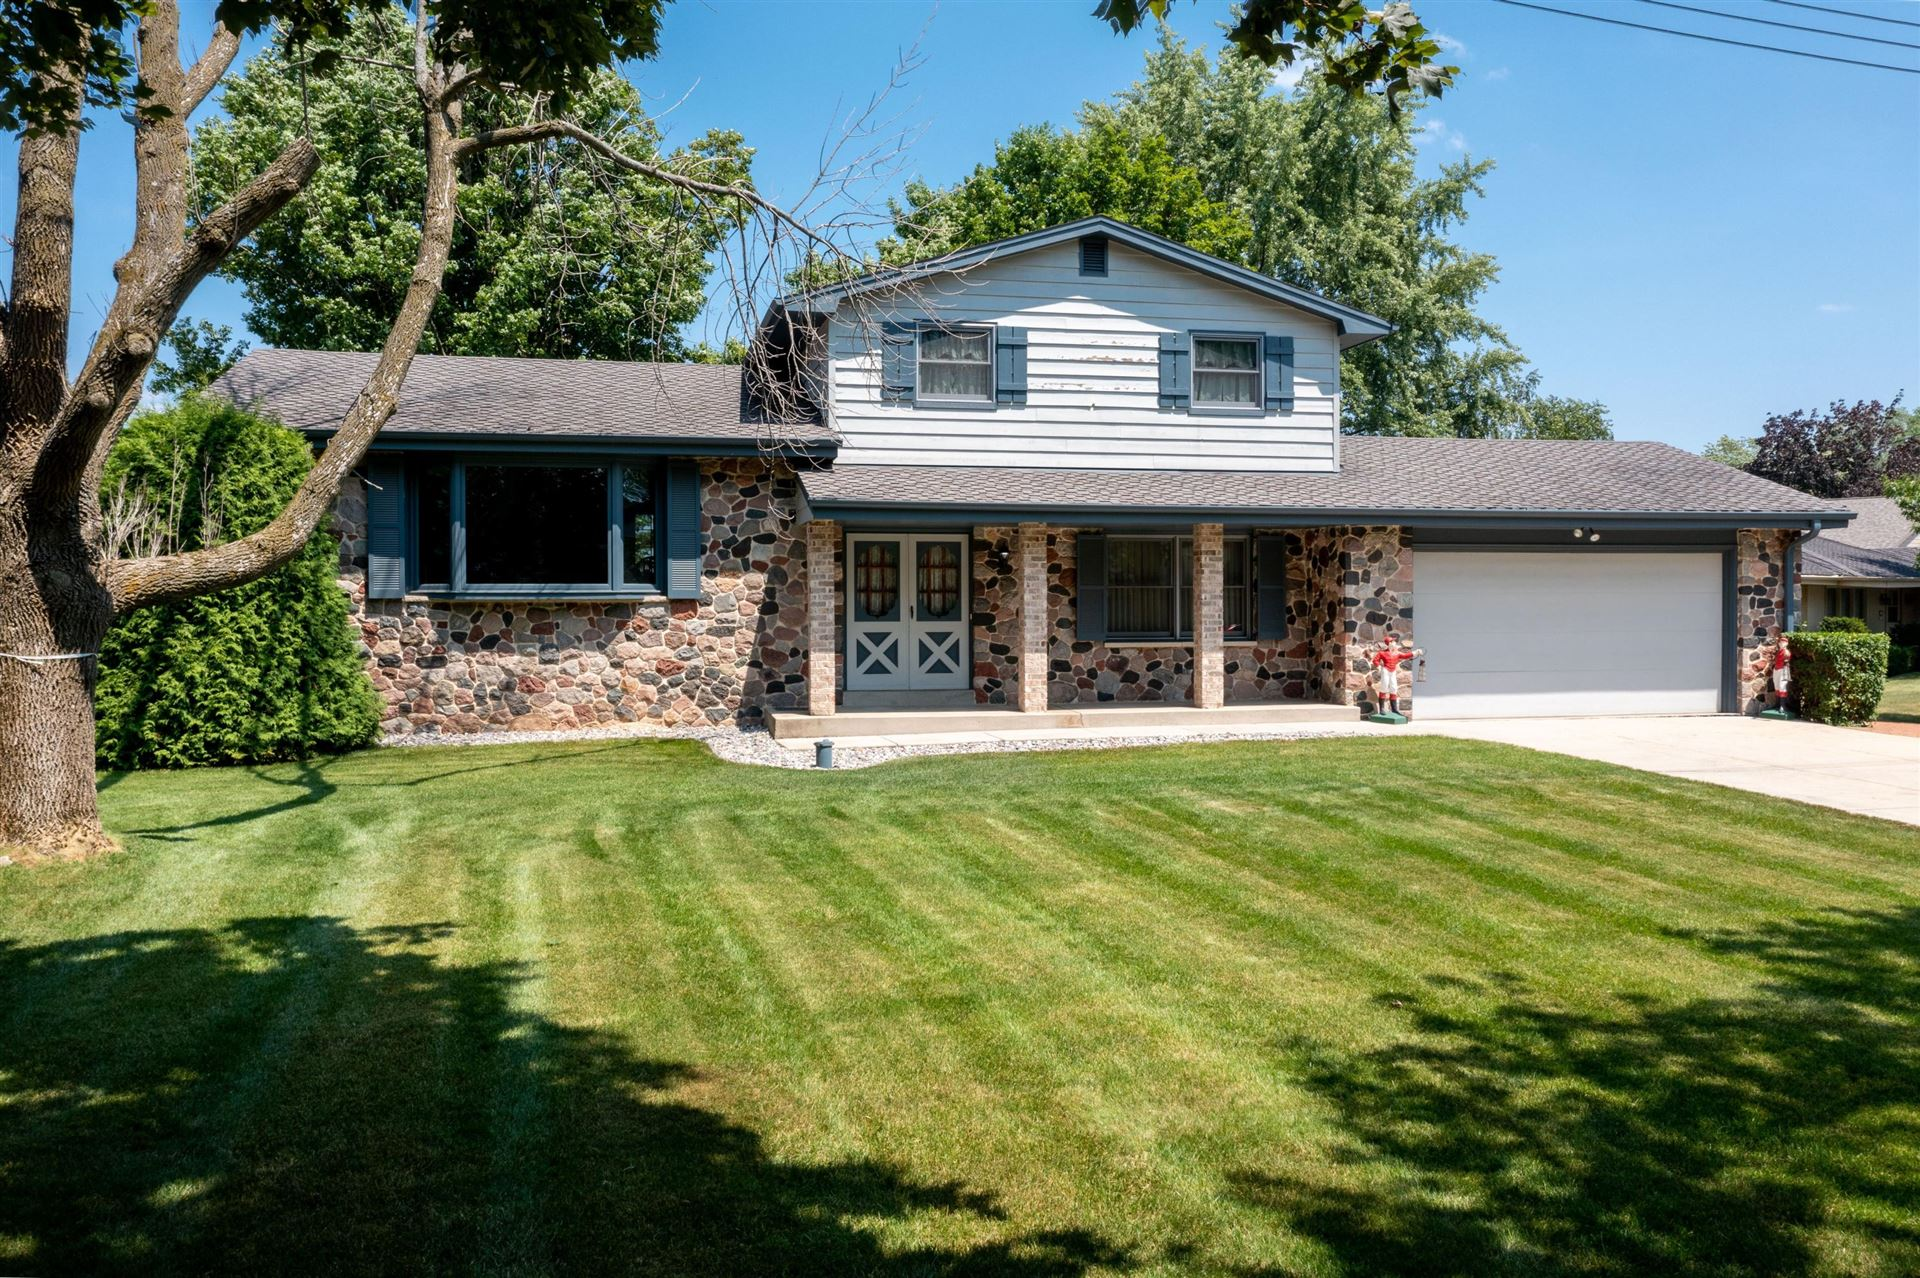 W191S7340 Bay Shore Dr, Muskego, WI 53150 - MLS#: 1750521